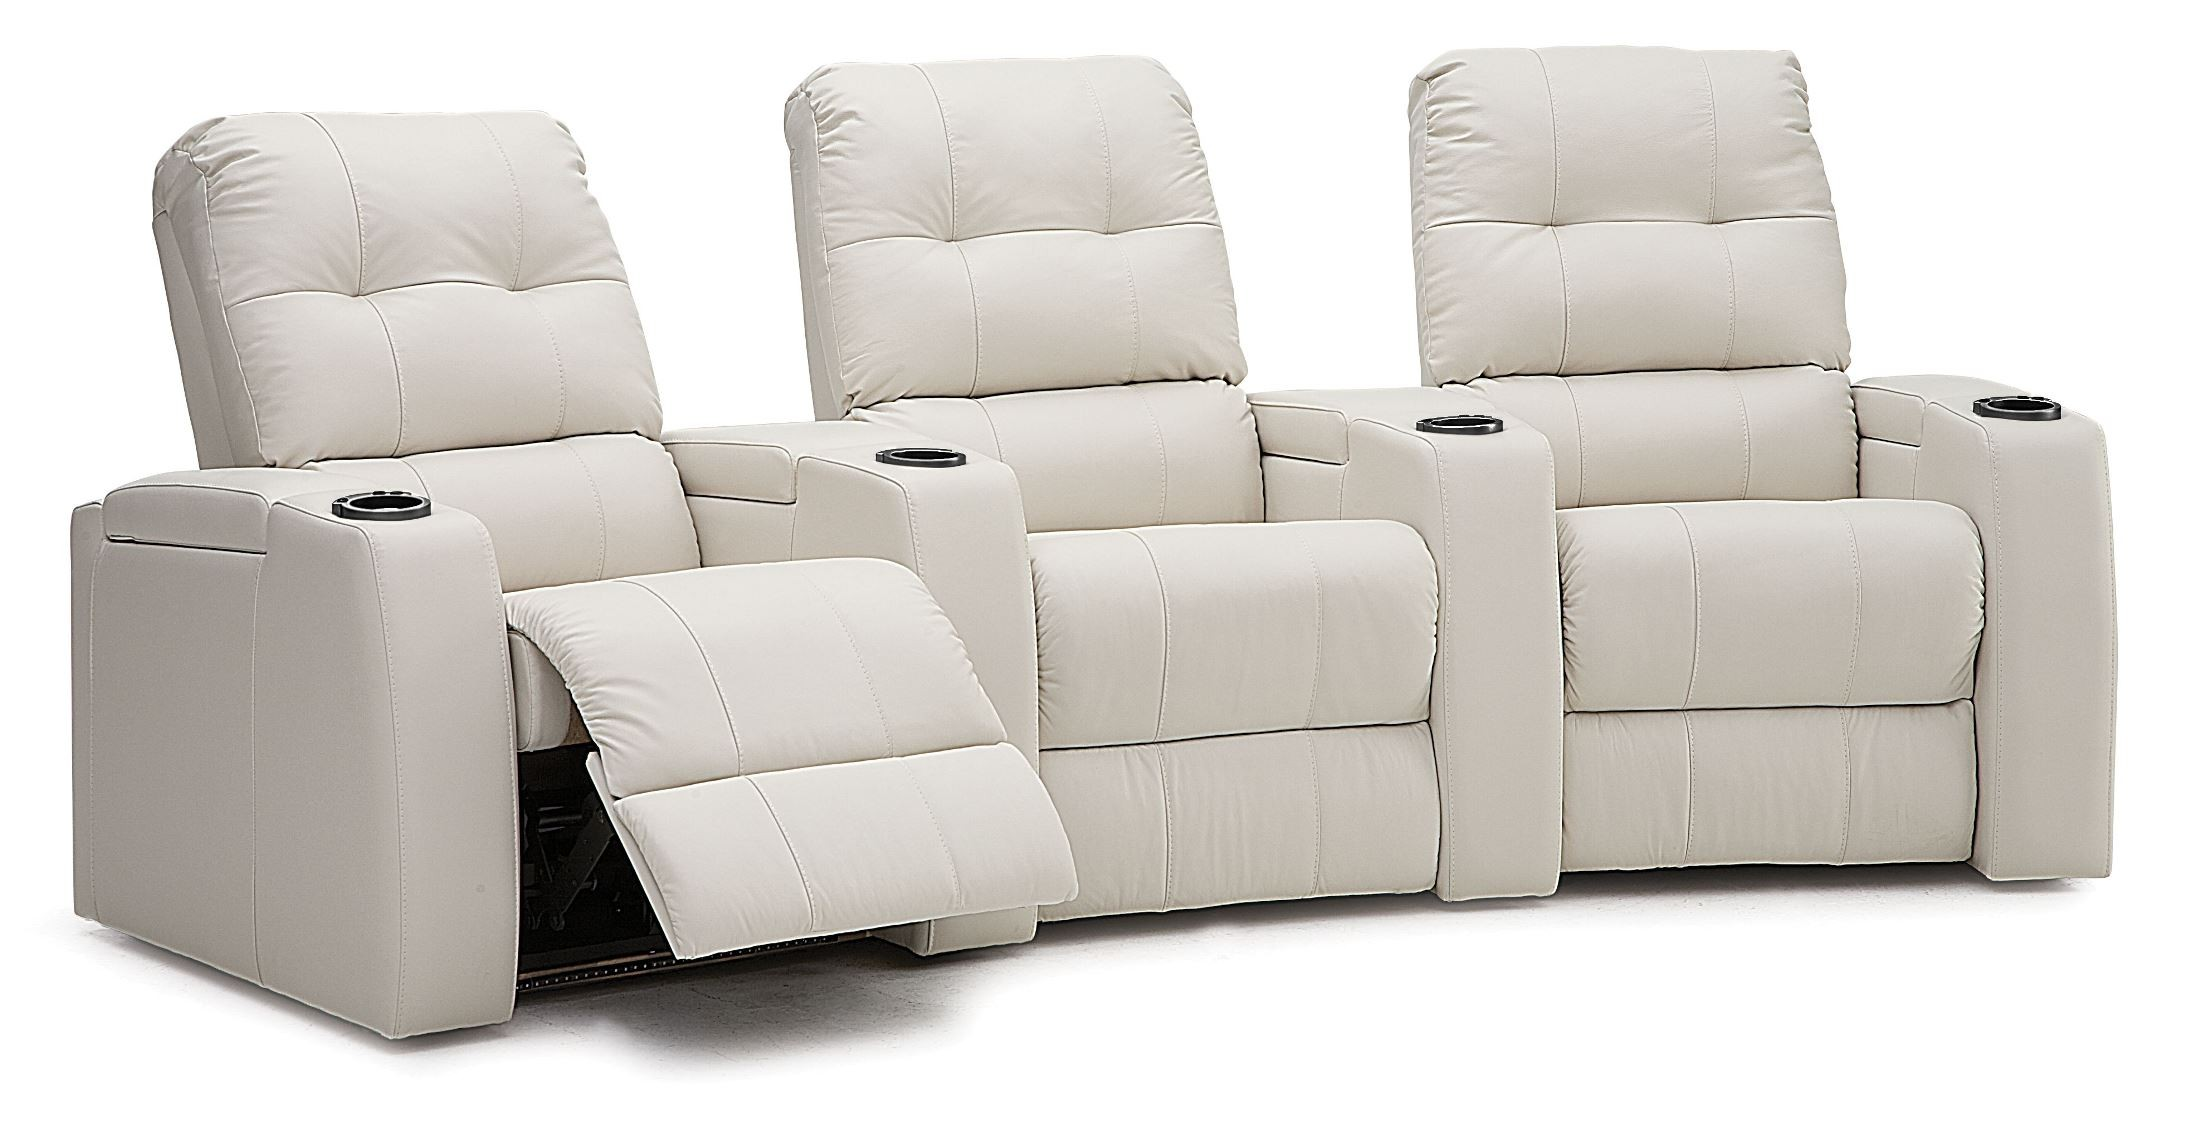 theater recliner chairs office chair joe rogan record bonded leather home theatre seating psr 41400